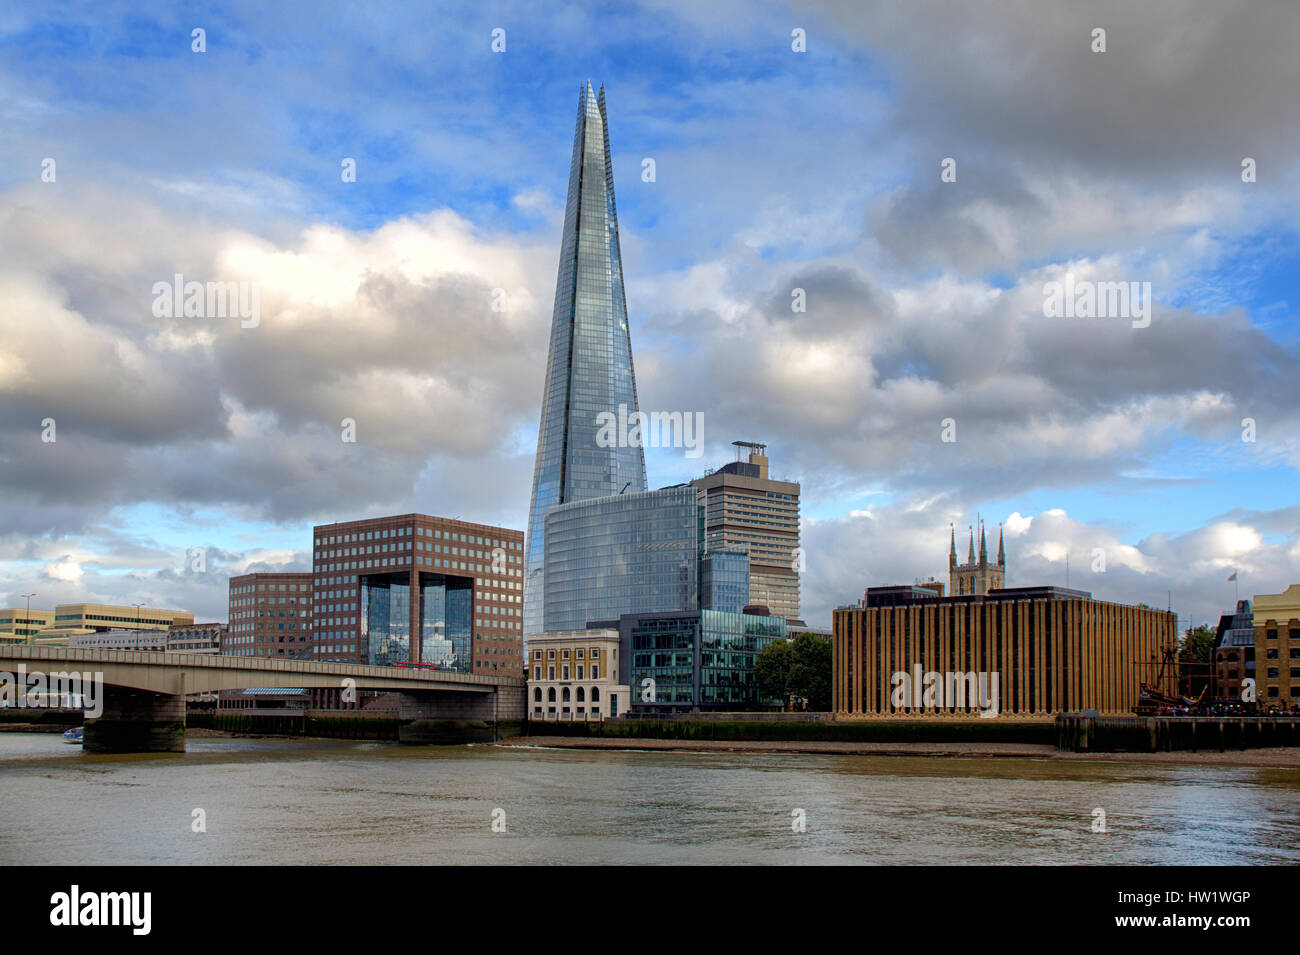 The Shard, New London Bridge and surrounding buildings with blue sky and clouds, daytime. London UK - Stock Image